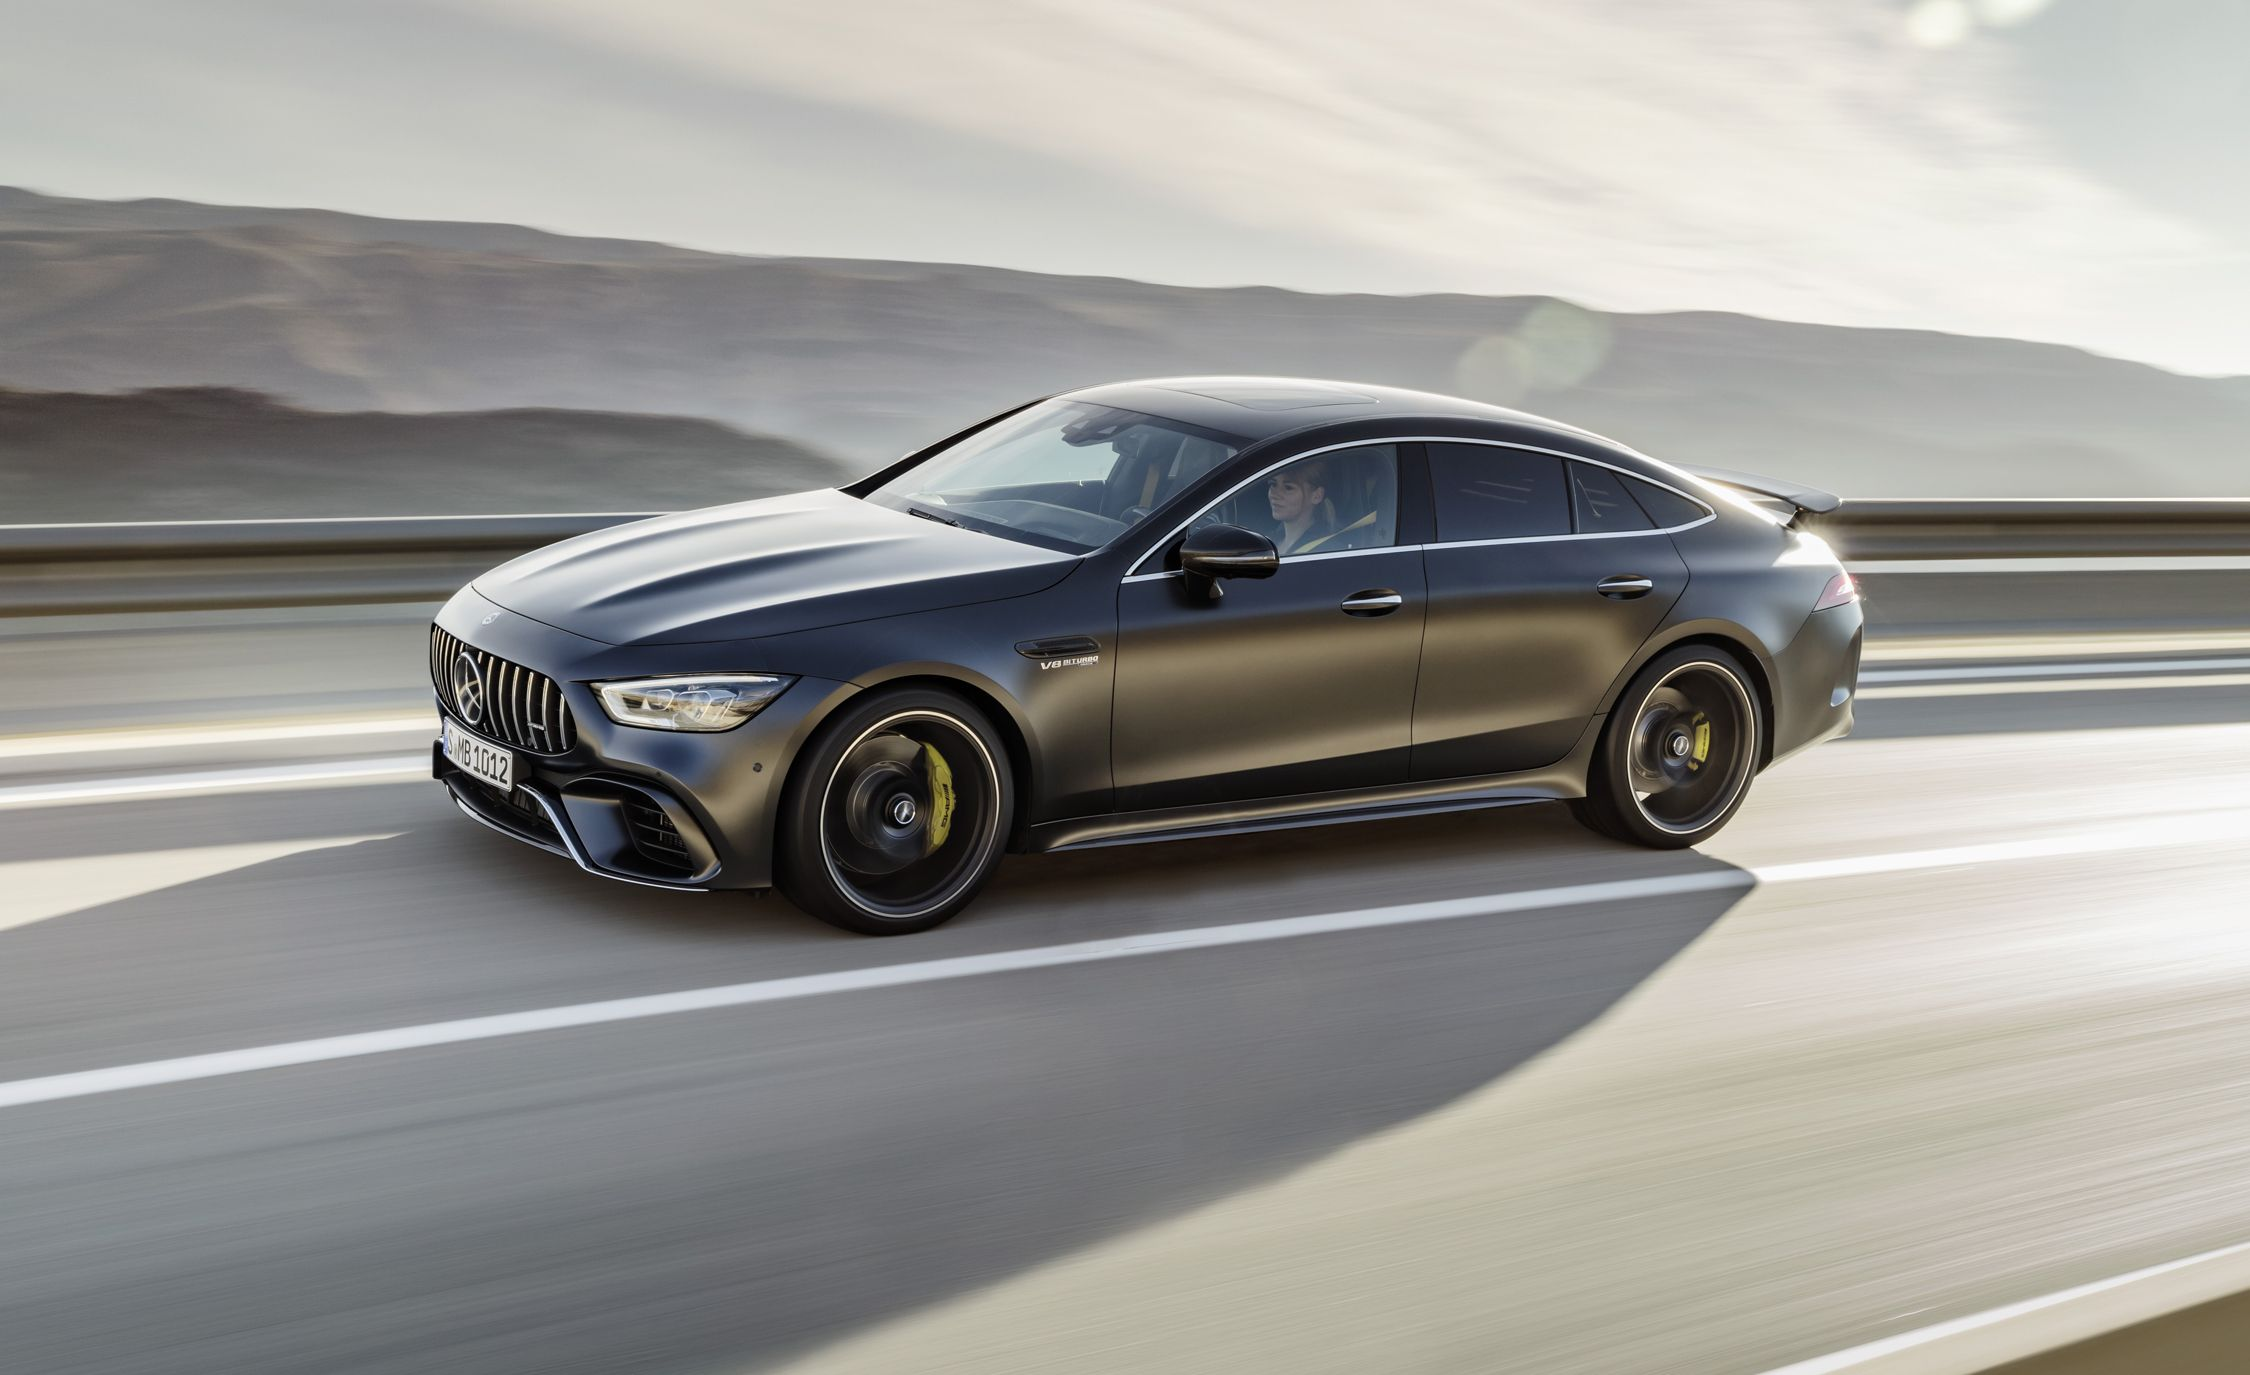 2019 Mercedes-AMG GT 4-Door: The More-Door AMG